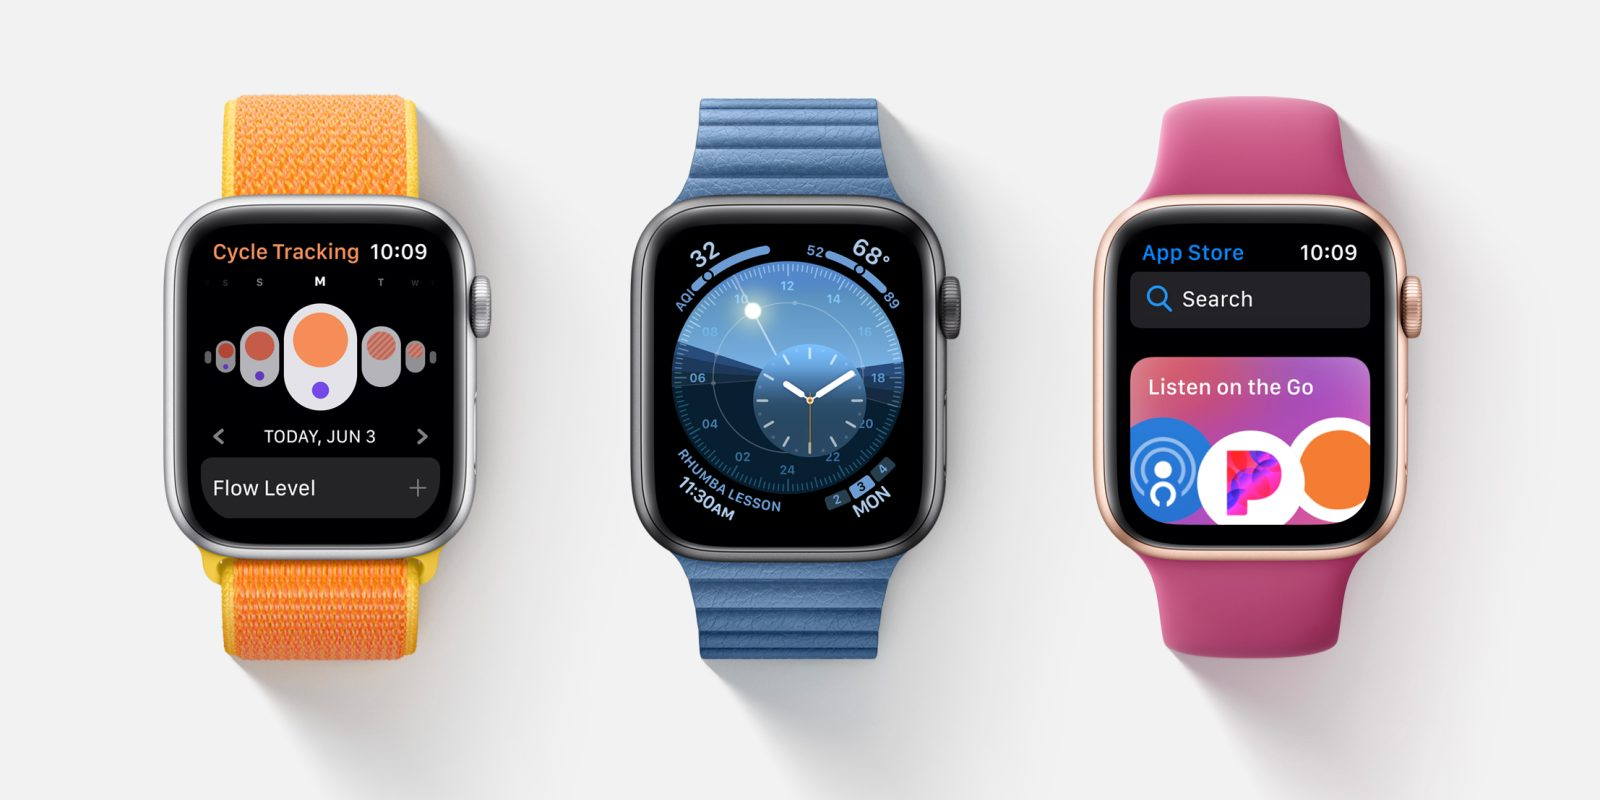 Don't wait for Black Friday, Apple Watch Series 4 is up to $350 off right now!